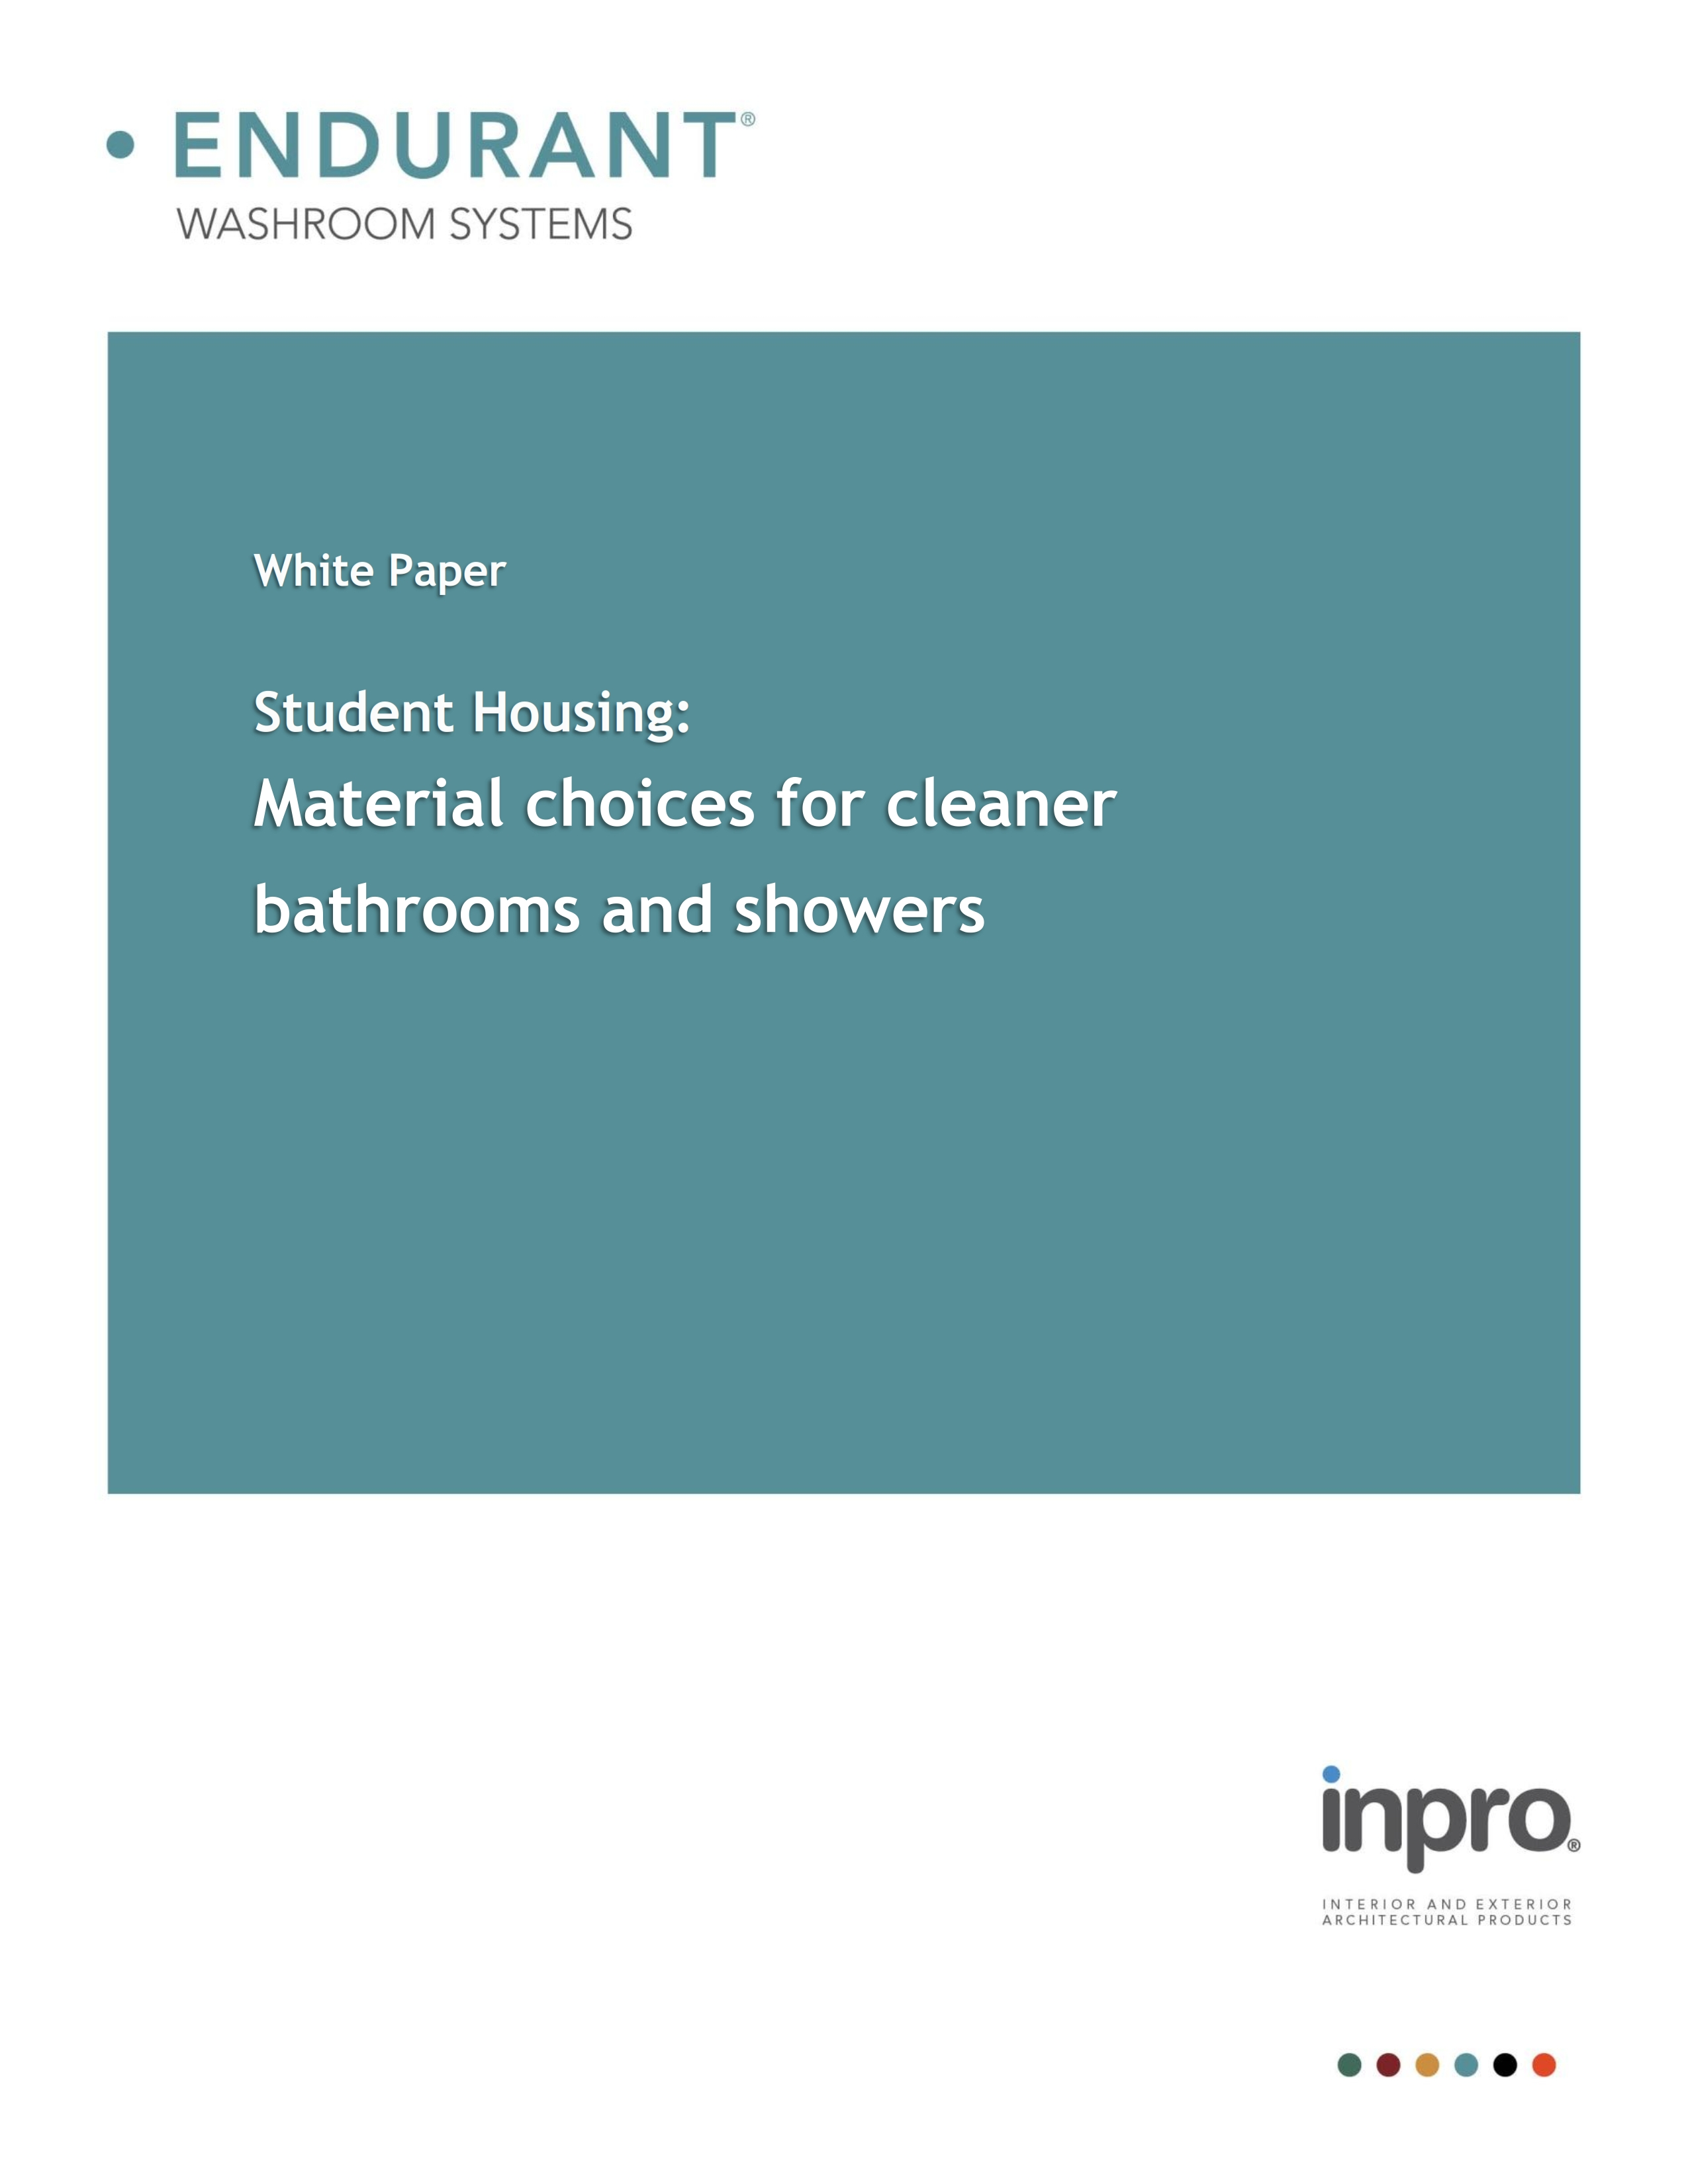 Student Housing - Material choices for cleaner bathrooms and showers